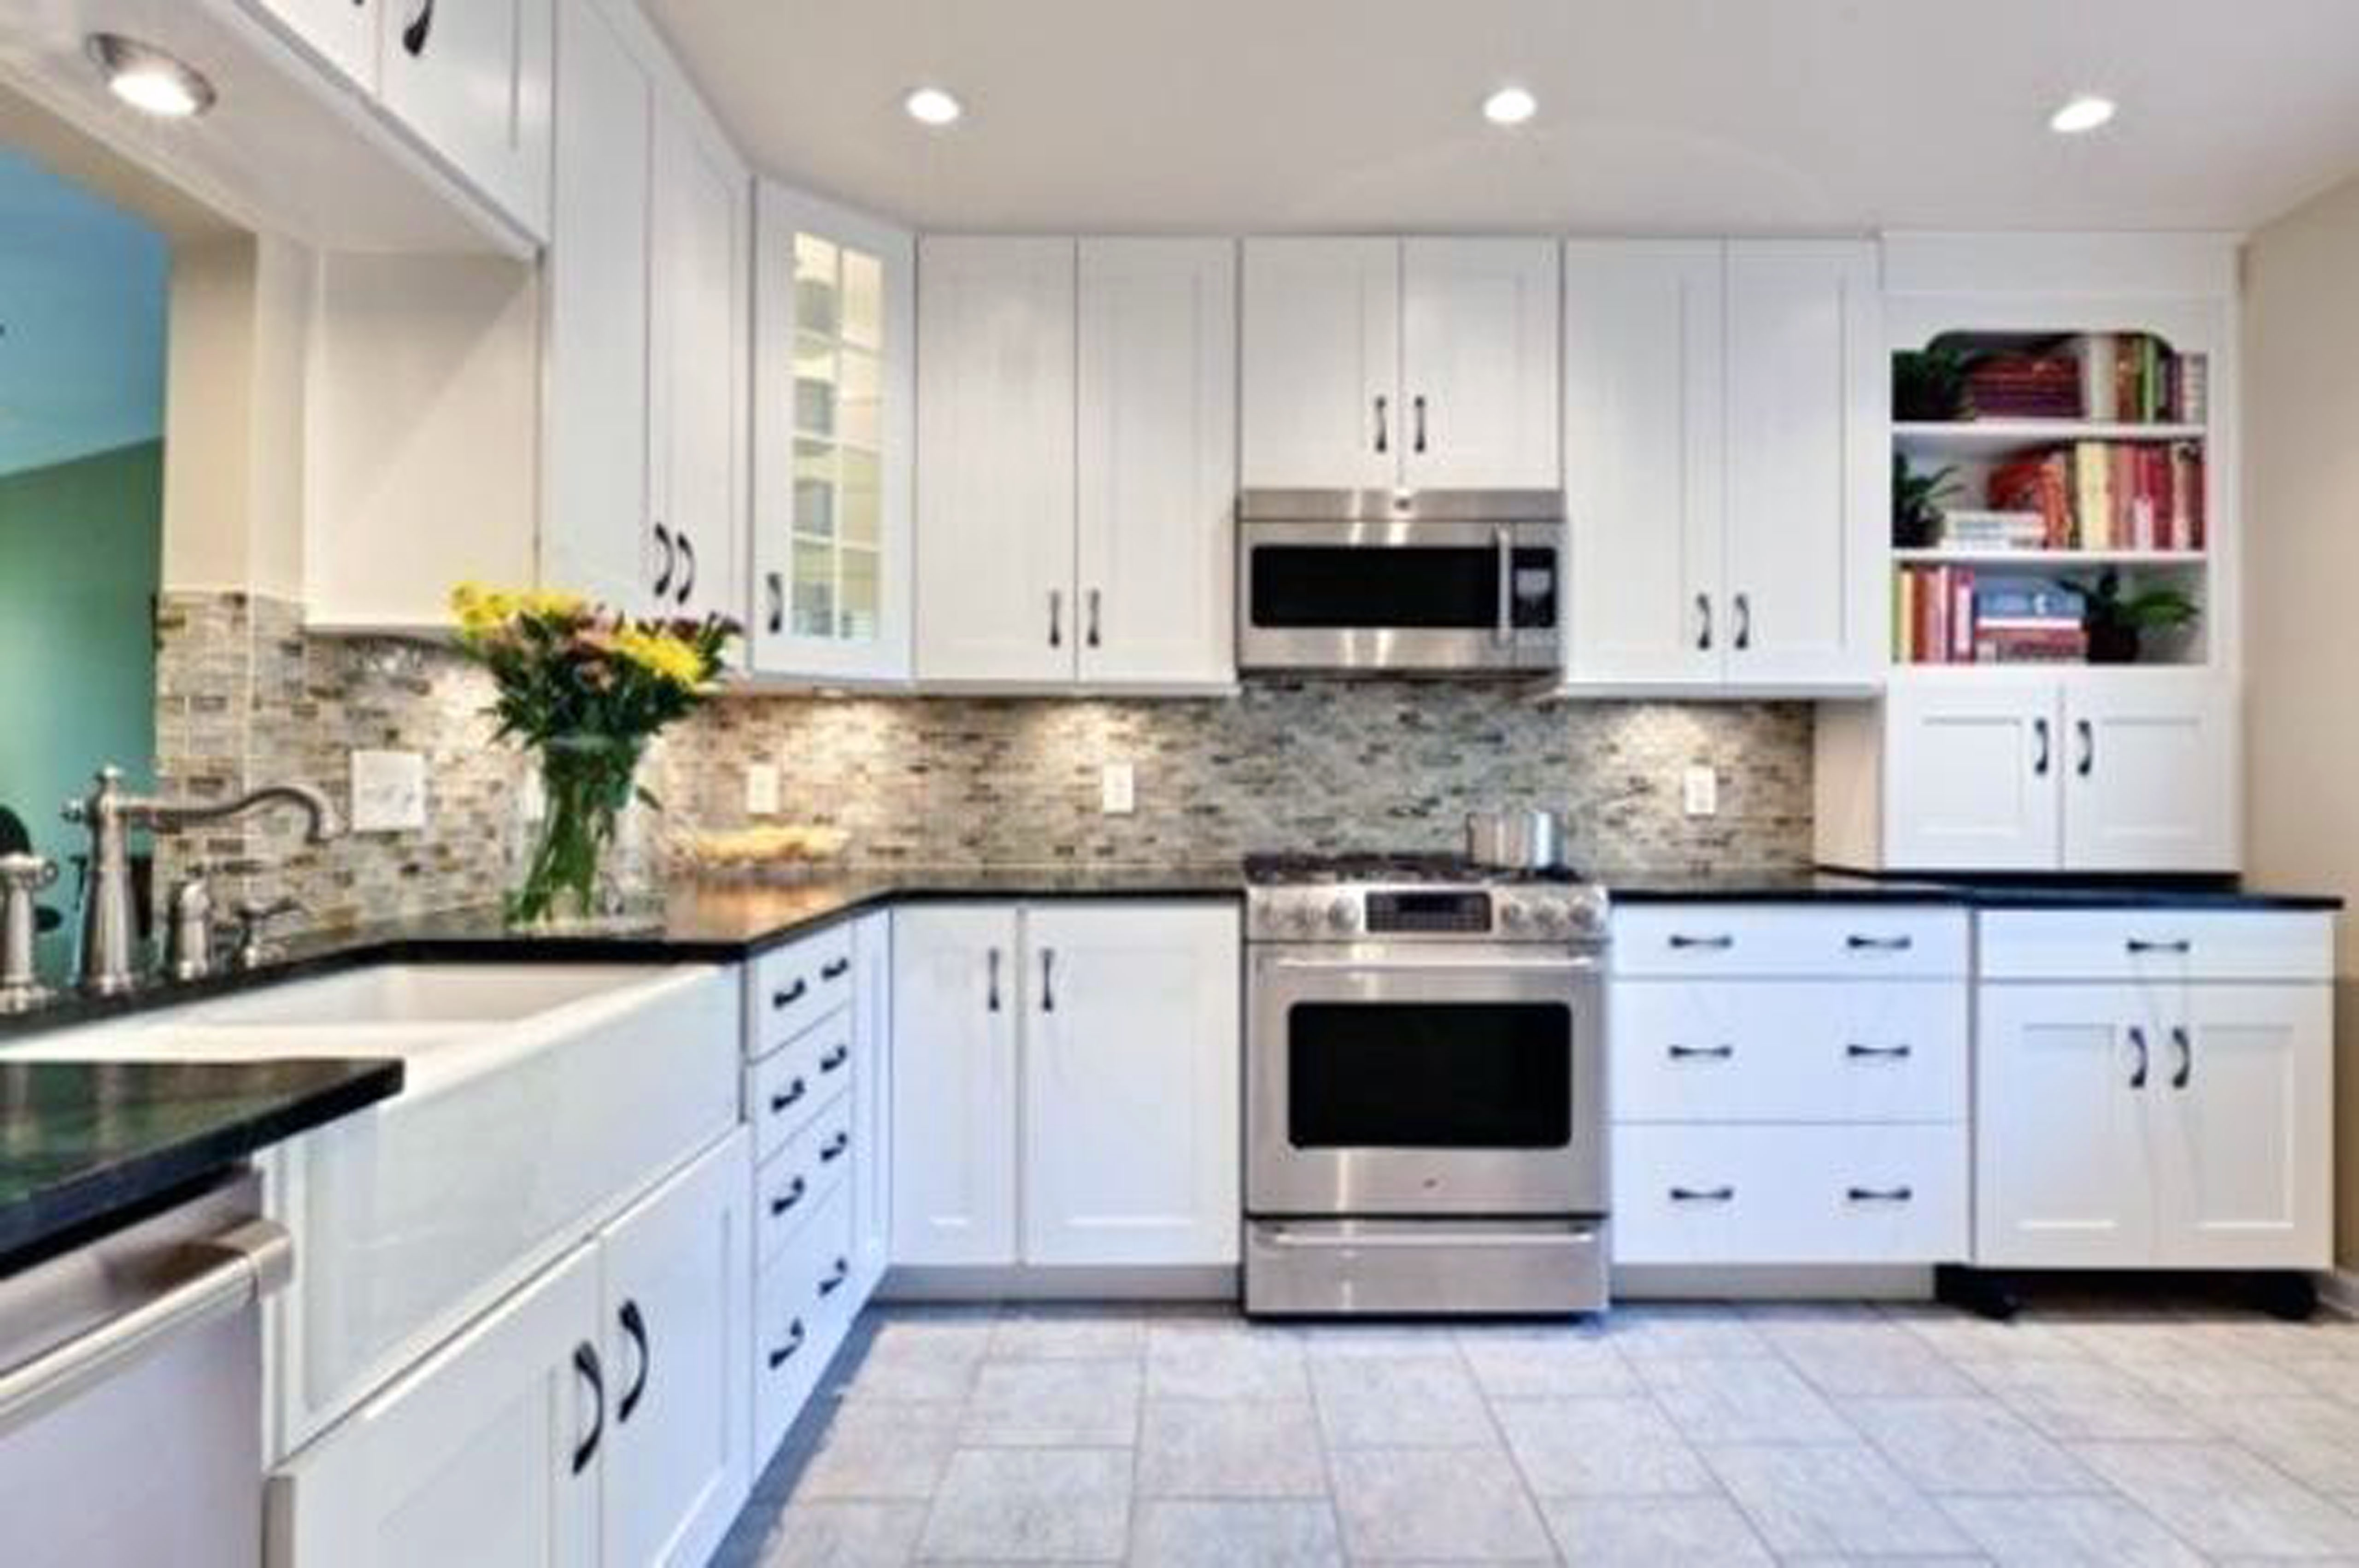 White Kitchen Cabinets Imageswhite kitchen cabinets ideas tryonshorts